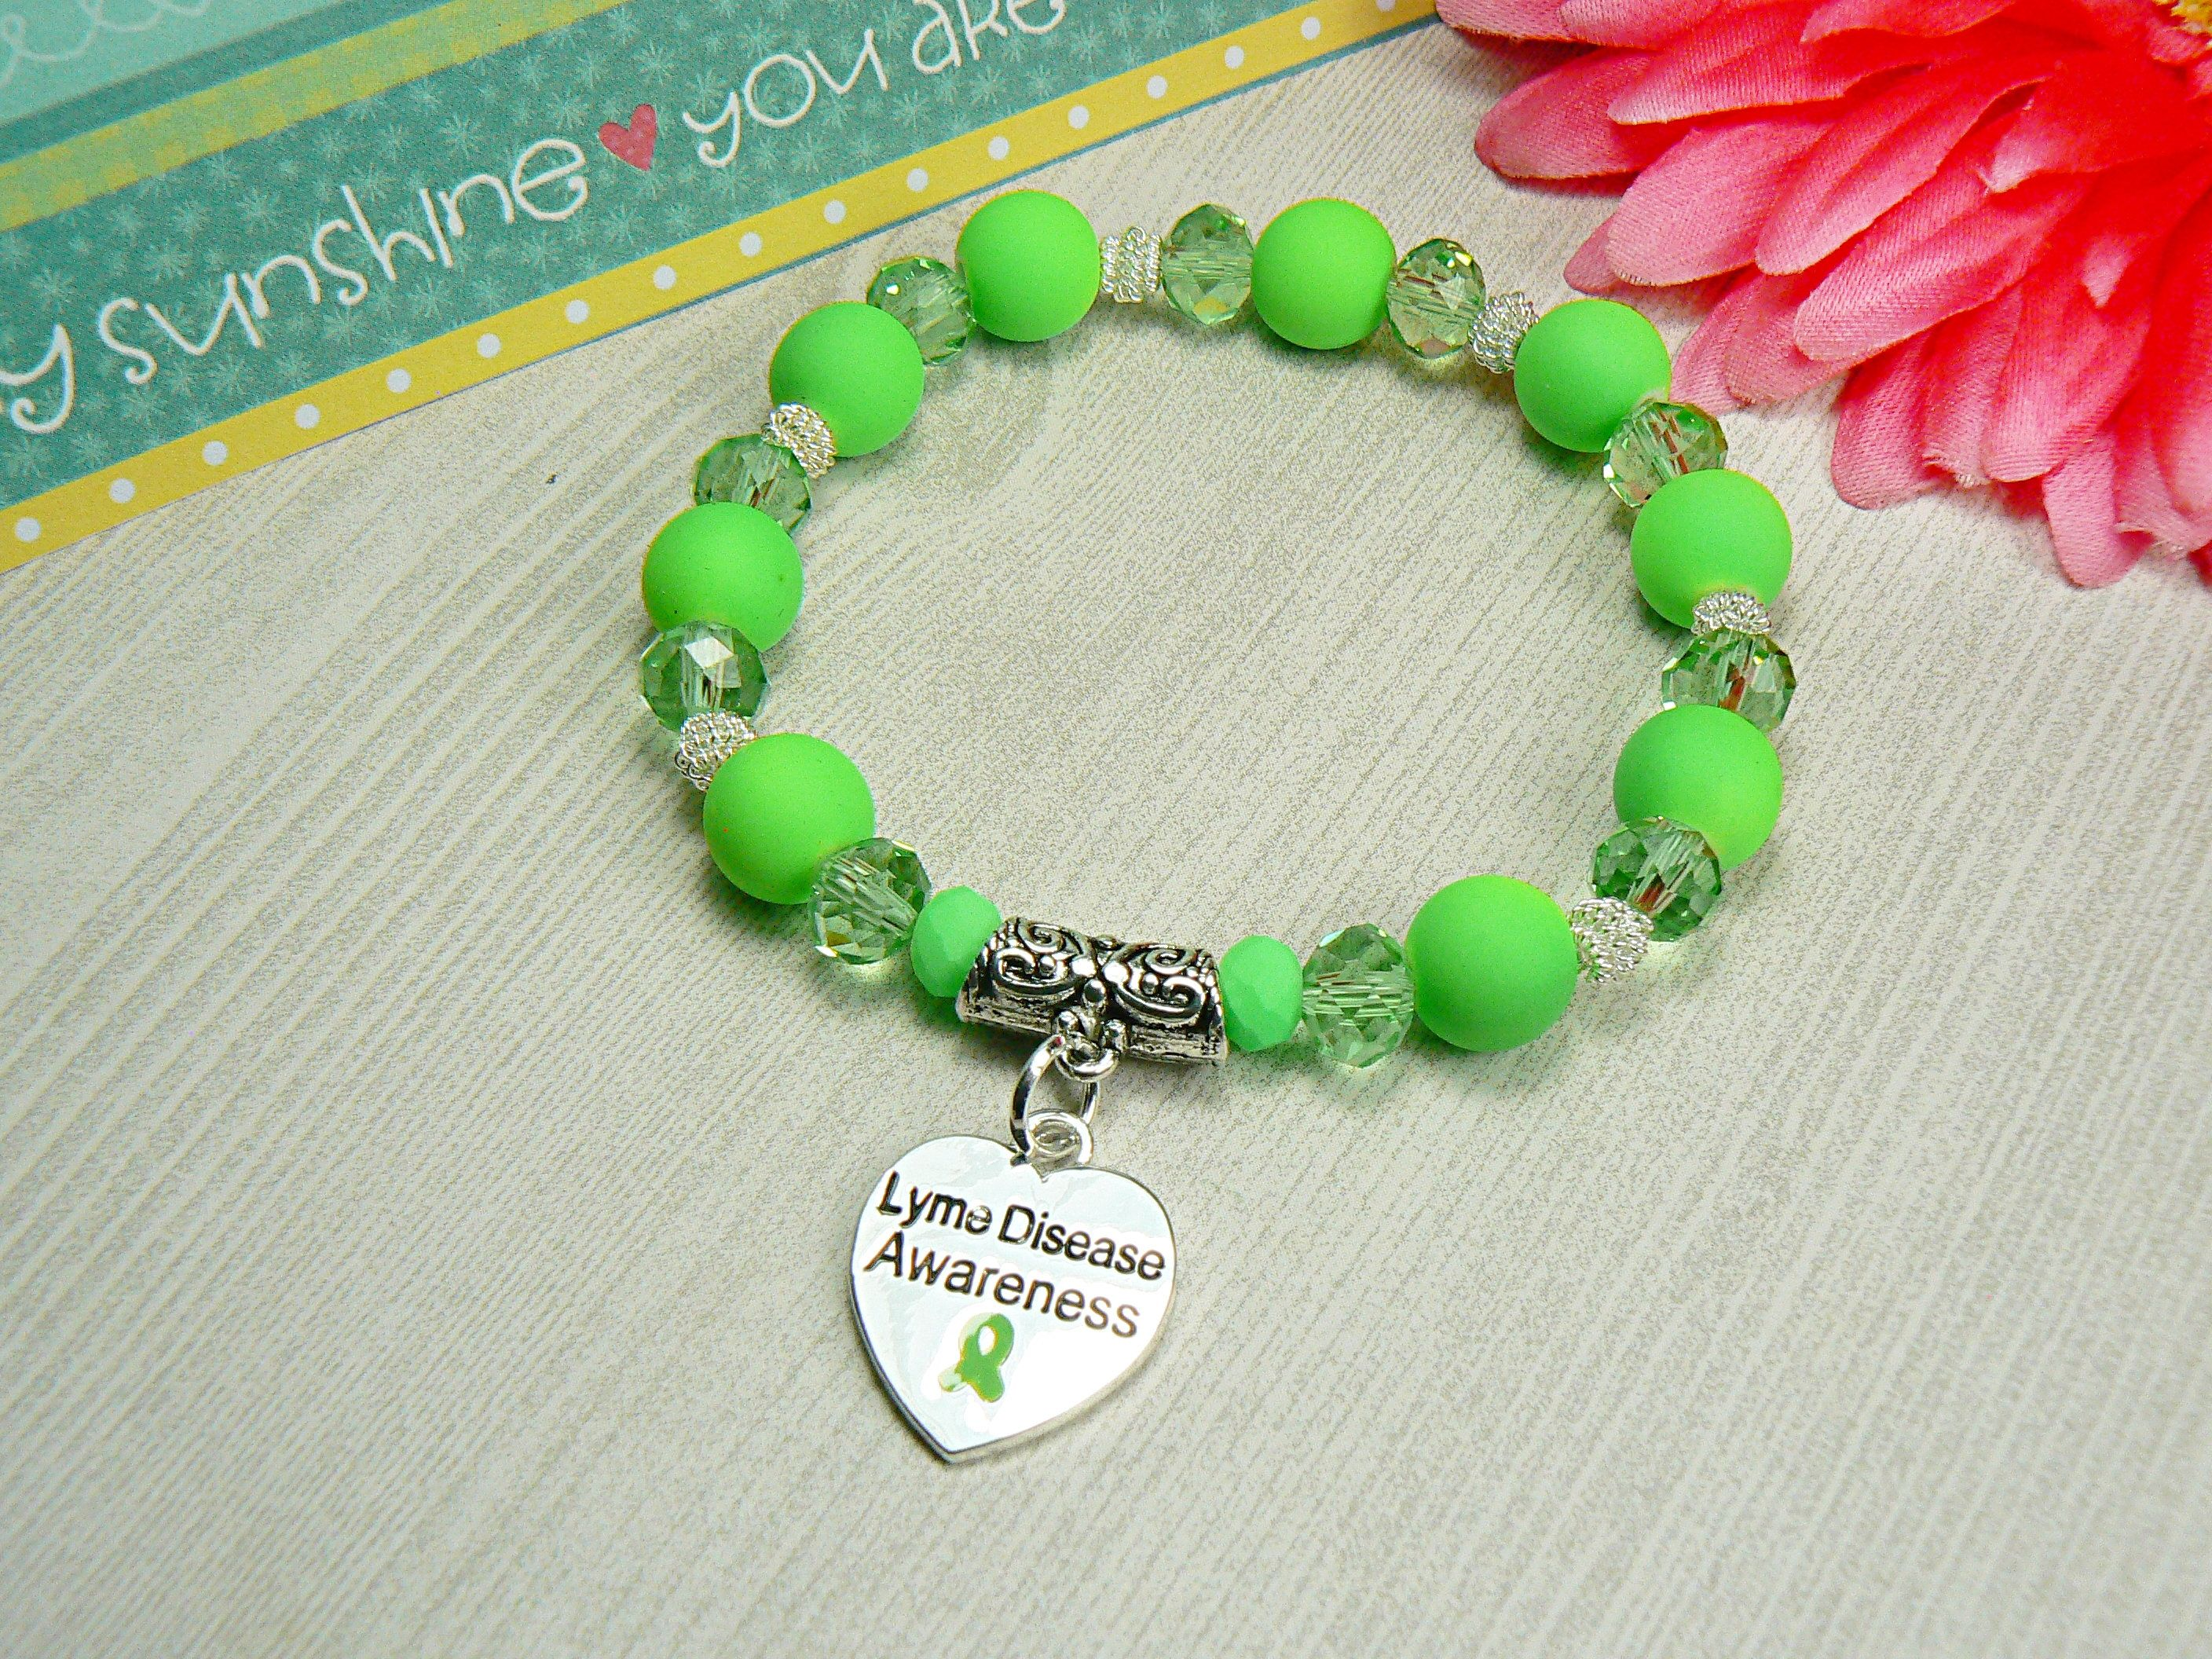 Lyme Disease Awareness Bracelet Lime Jewelry Hope Gift For Her By Hopeinbracelets On